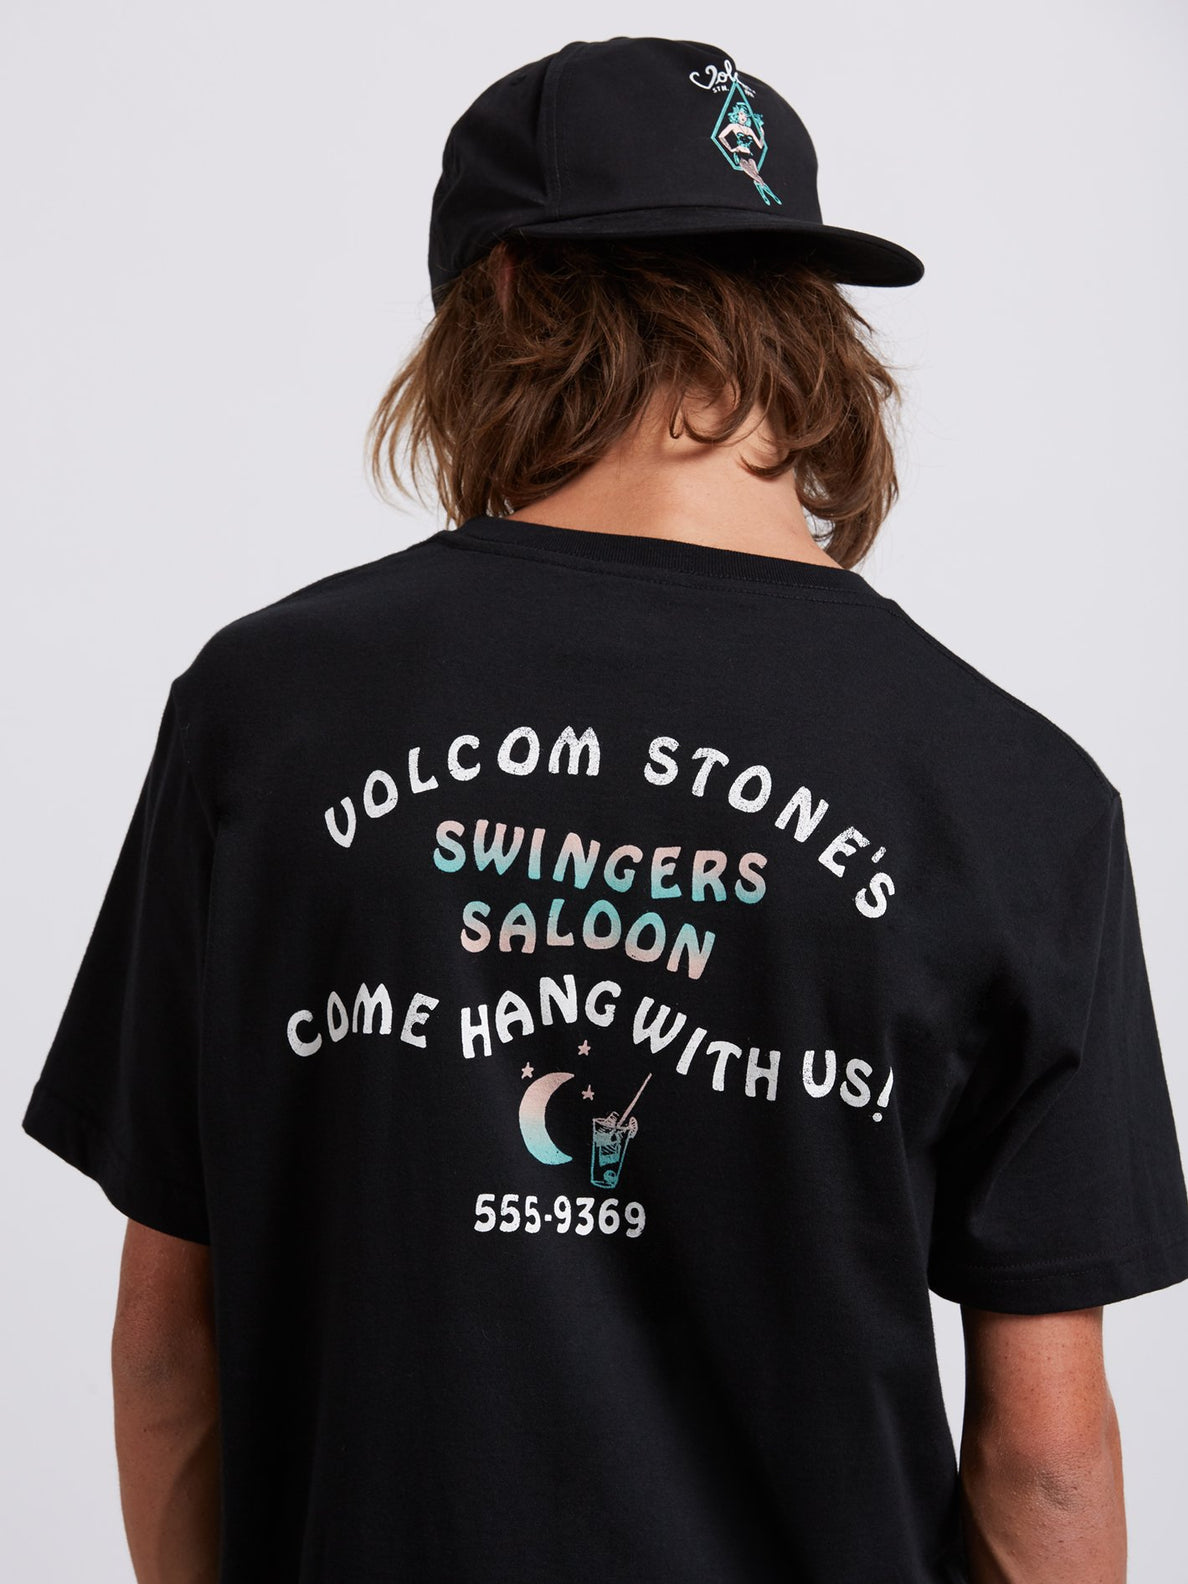 Swingers Saloon Tee In Black, Second Alternate View